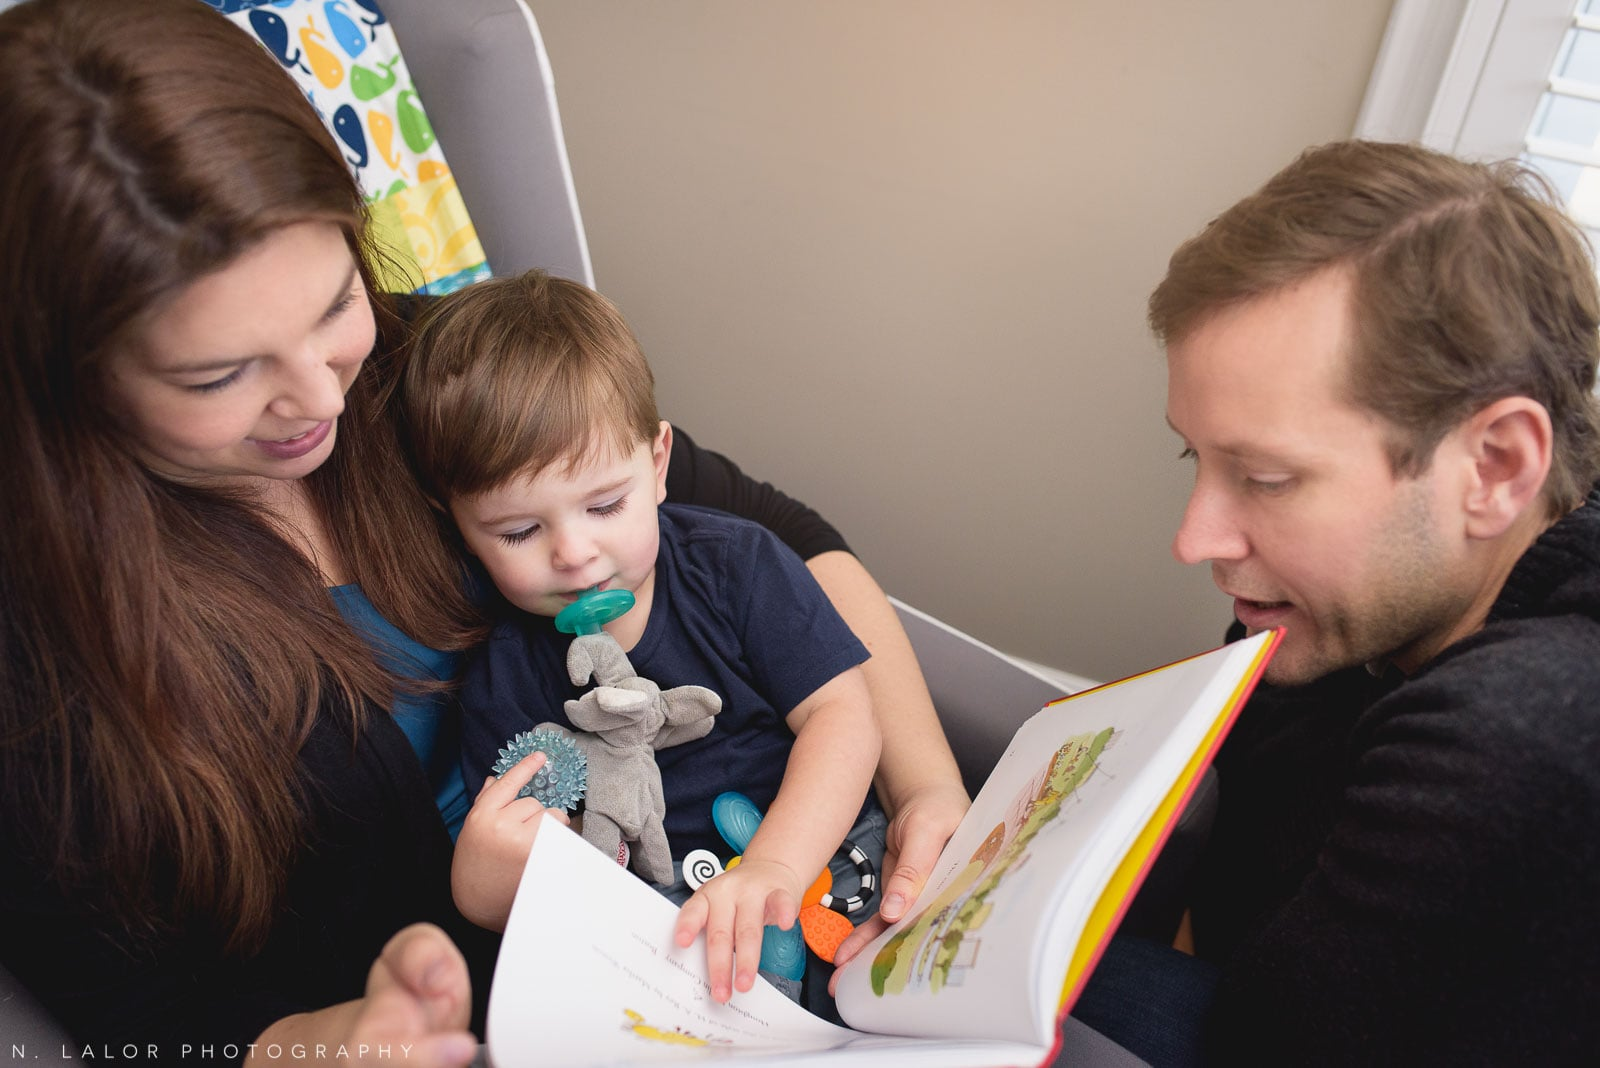 Mom and Dad reading a book to their toddler son. Lifestyle in-home portrait by N. Lalor Photography.